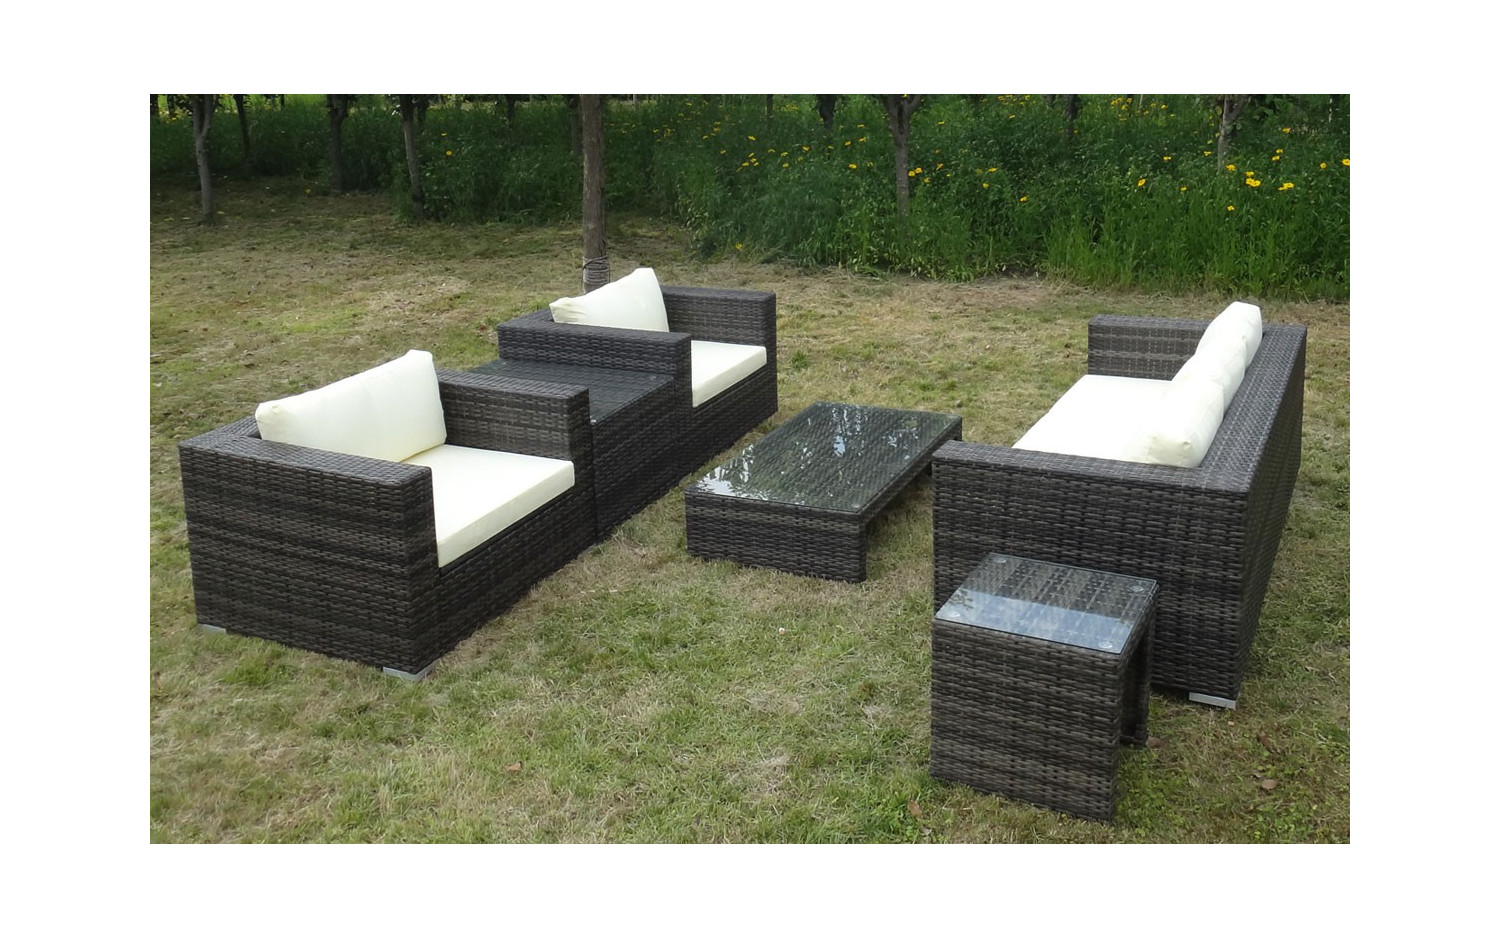 baidani rattan garten lounge pride select integrierter. Black Bedroom Furniture Sets. Home Design Ideas